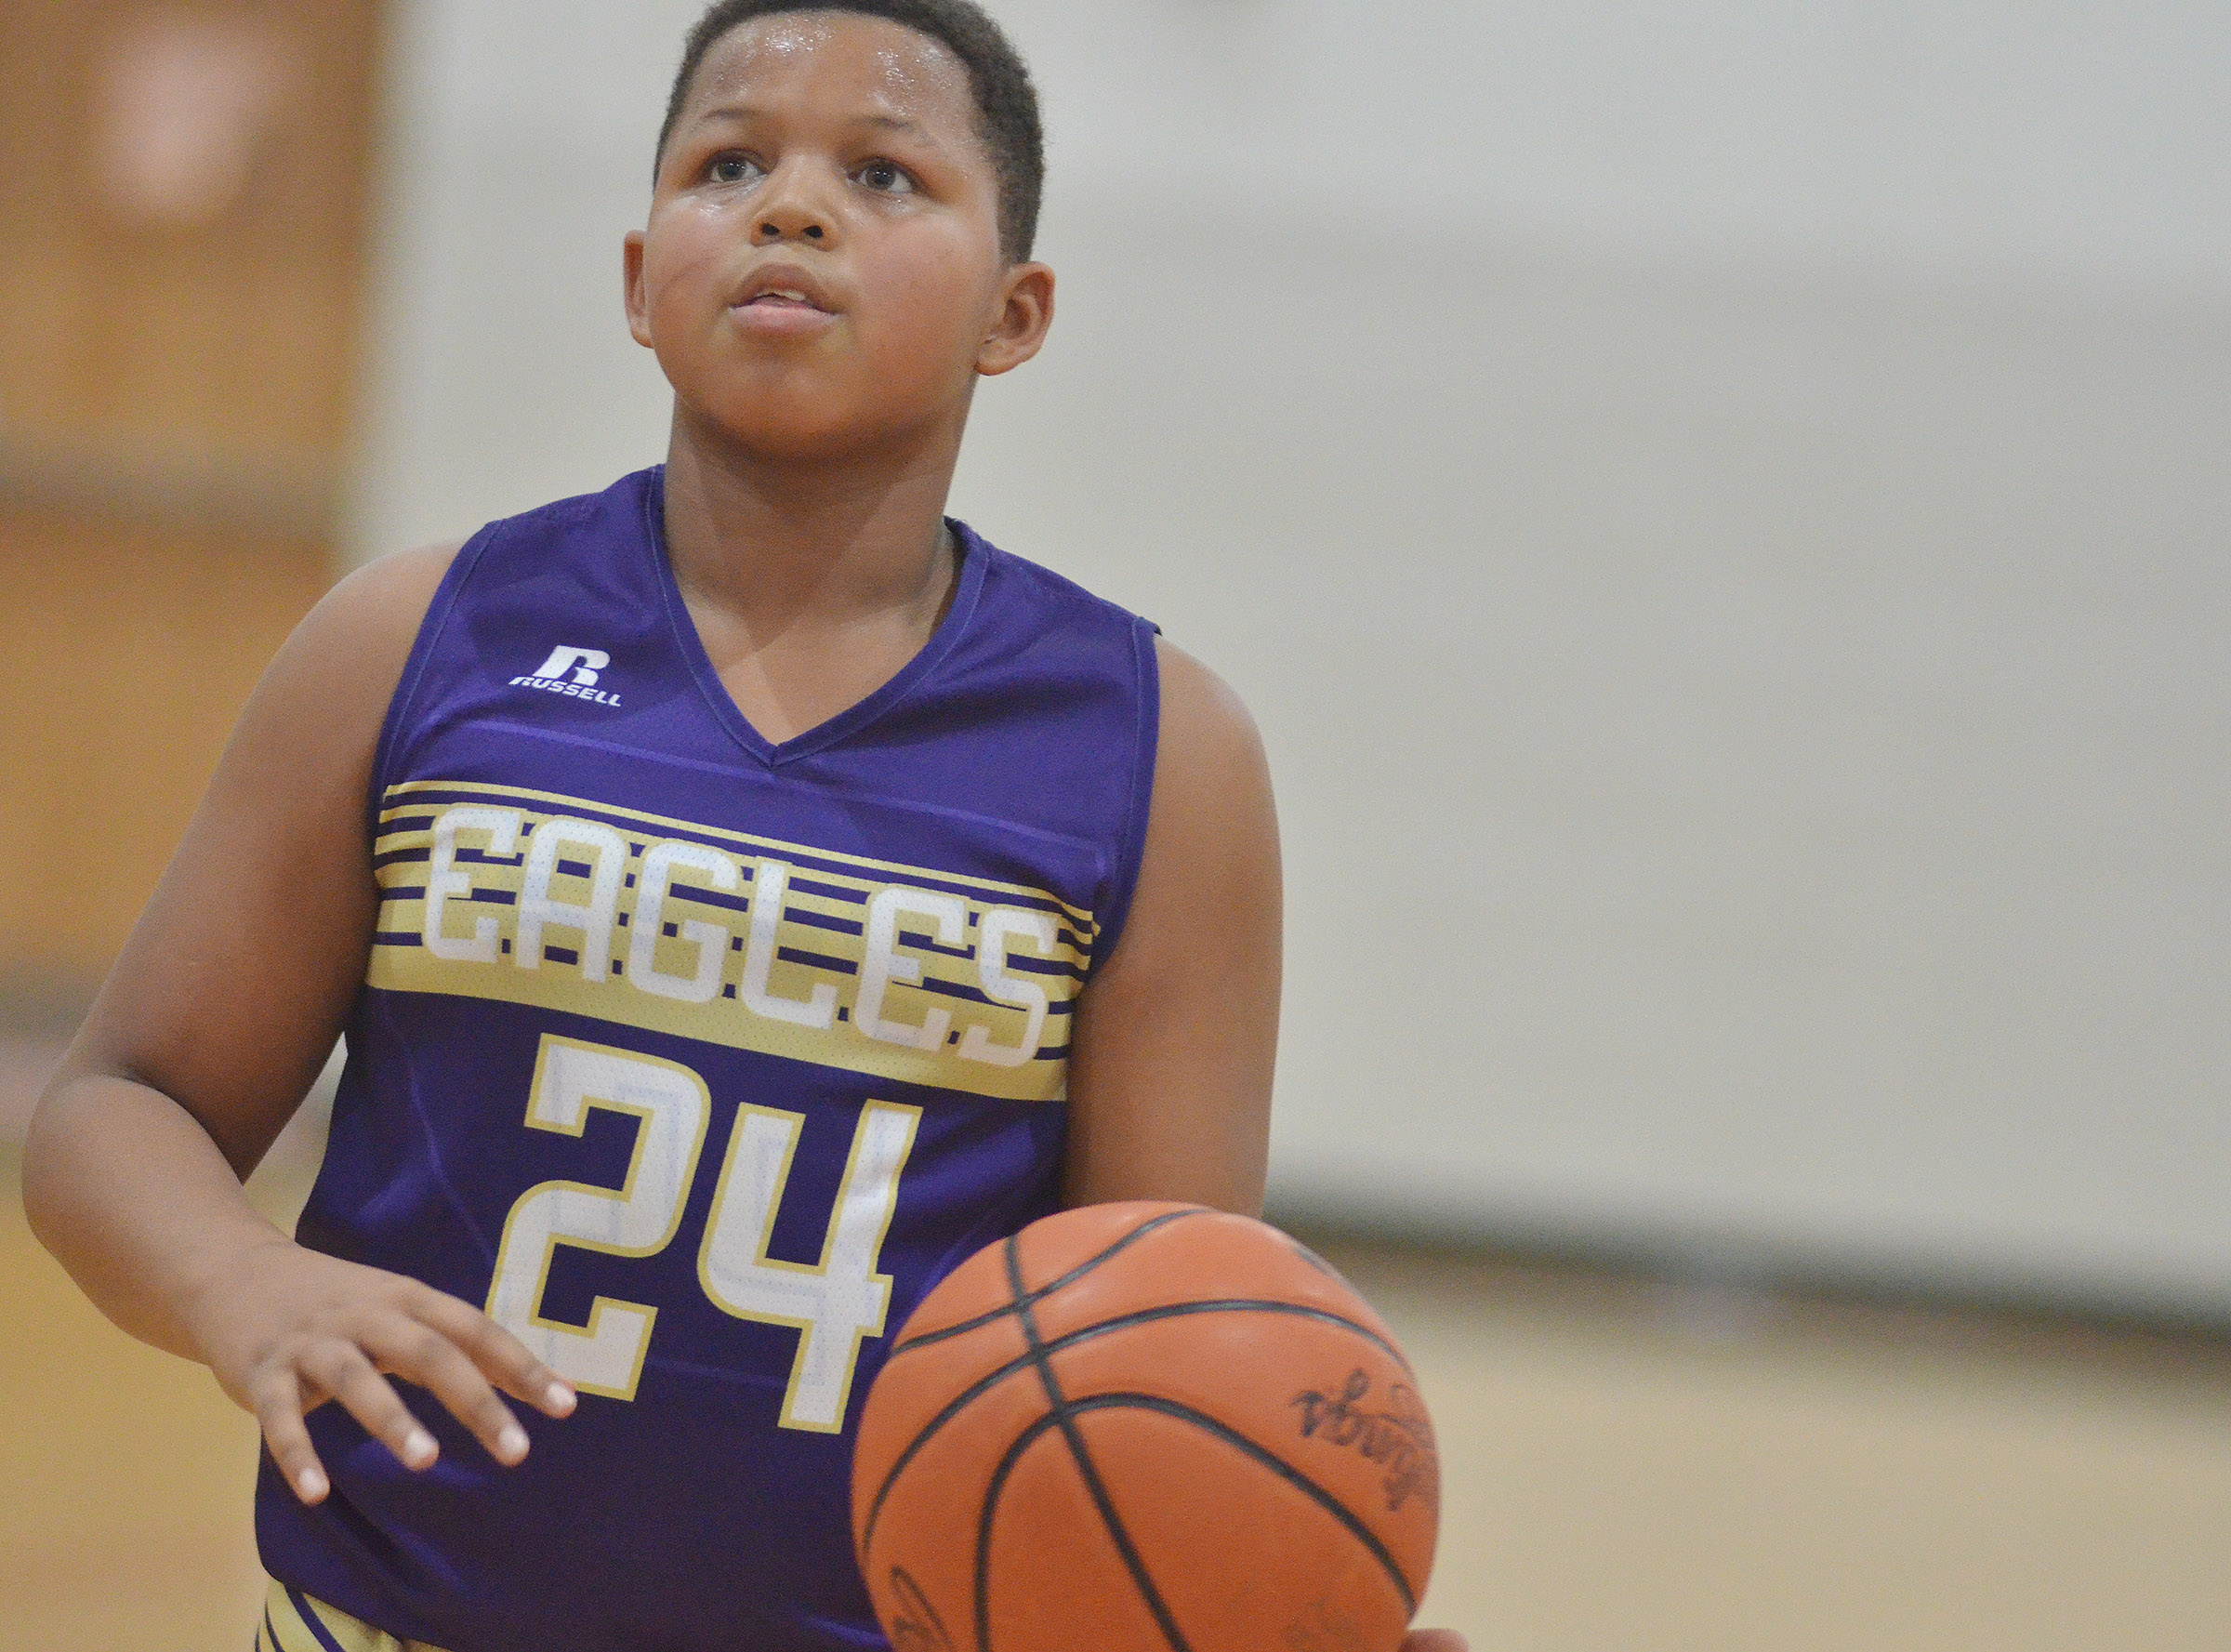 CMS sixth-graders Deondre Weathers shoots the ball.